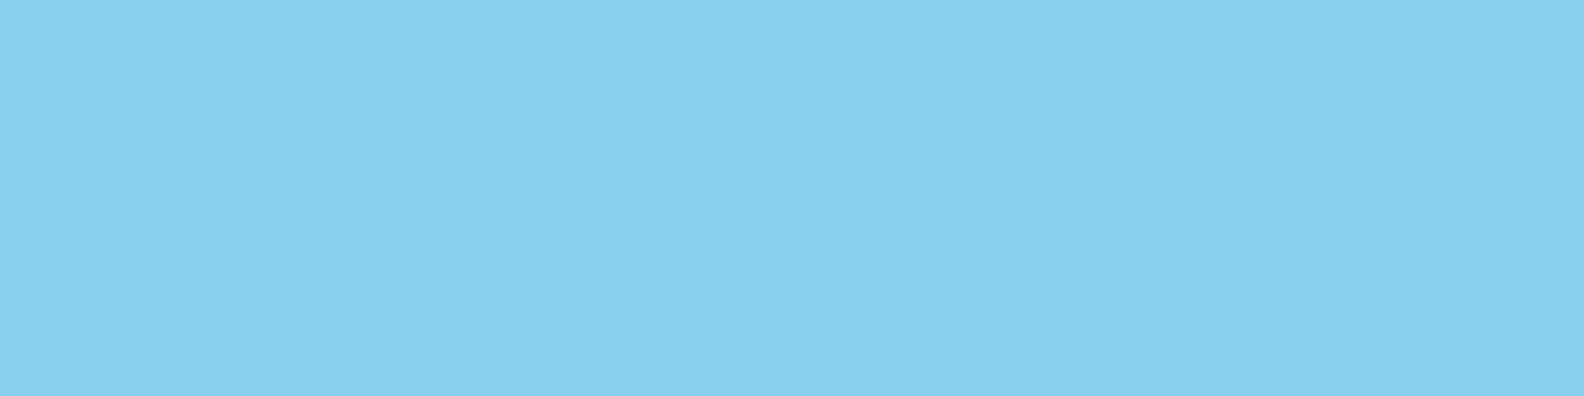 1584x396 Baby Blue Solid Color Background